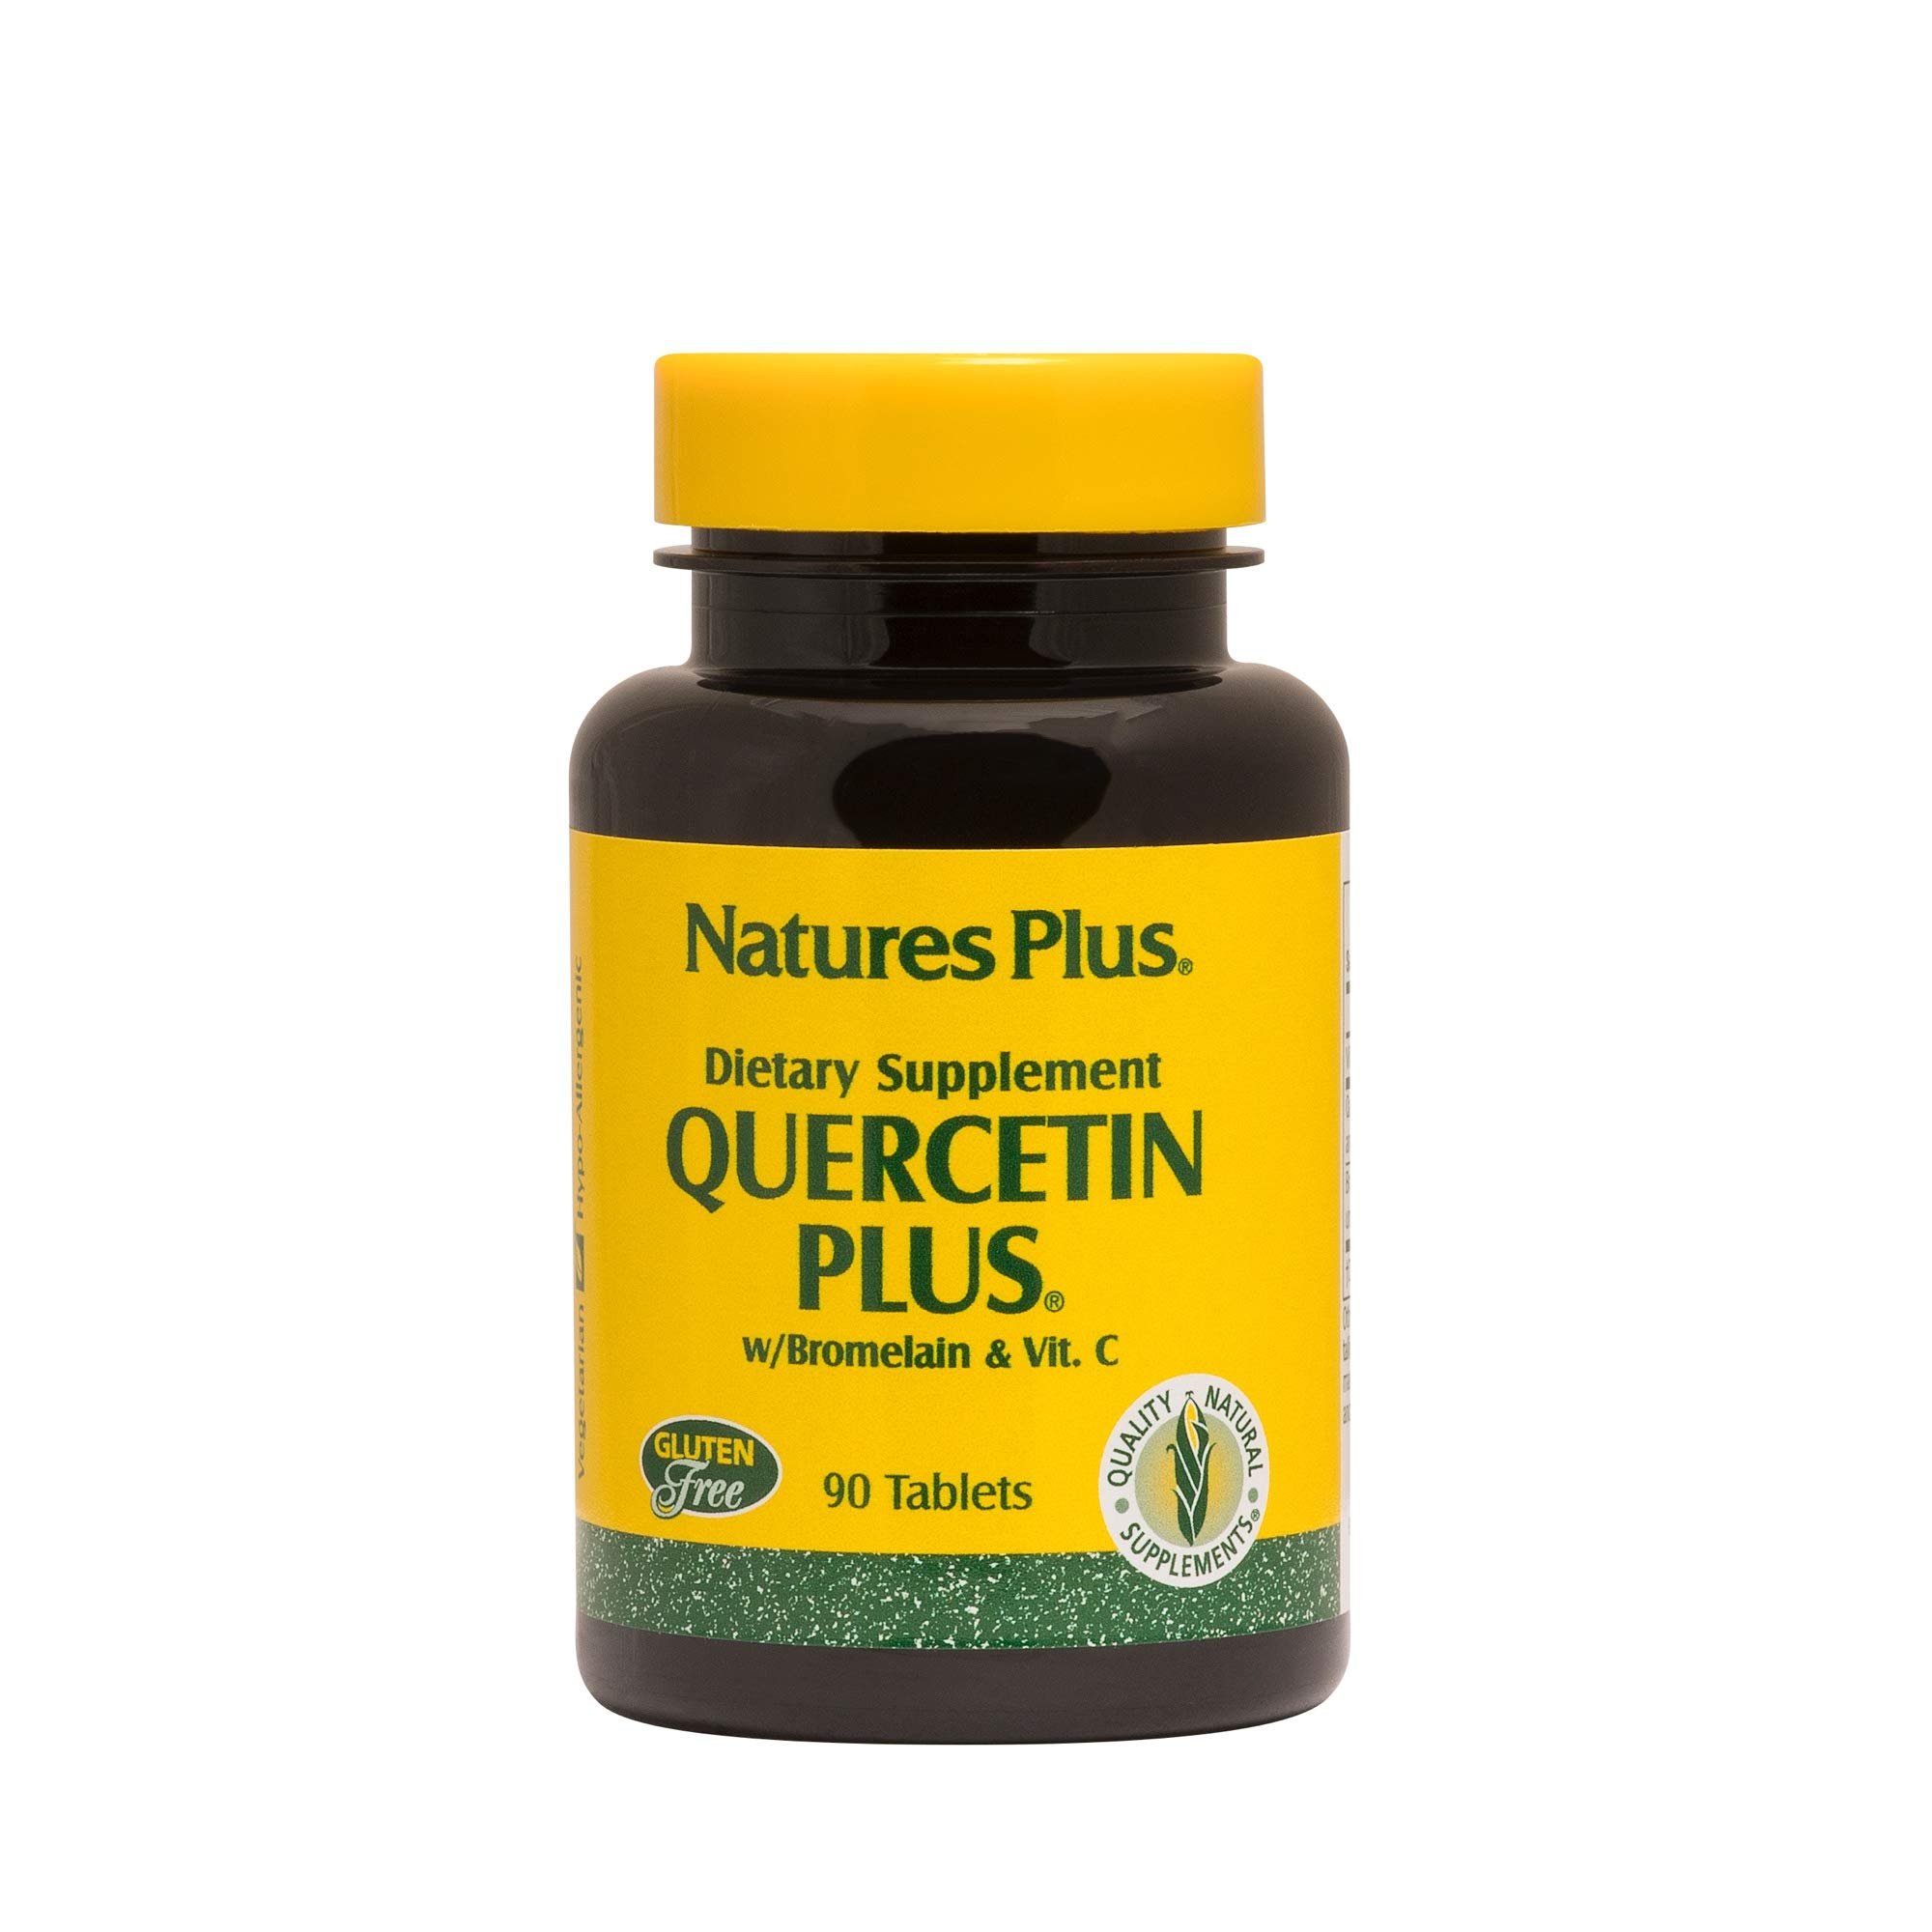 Natures Plus Quercetin Plus with Vitamin C and Bromelain - 650 mg, 90 Vegetarian Tablets - Allergy Relief Supplement, Antioxidant, Anti inflammatory - Gluten Free - 45 Servings